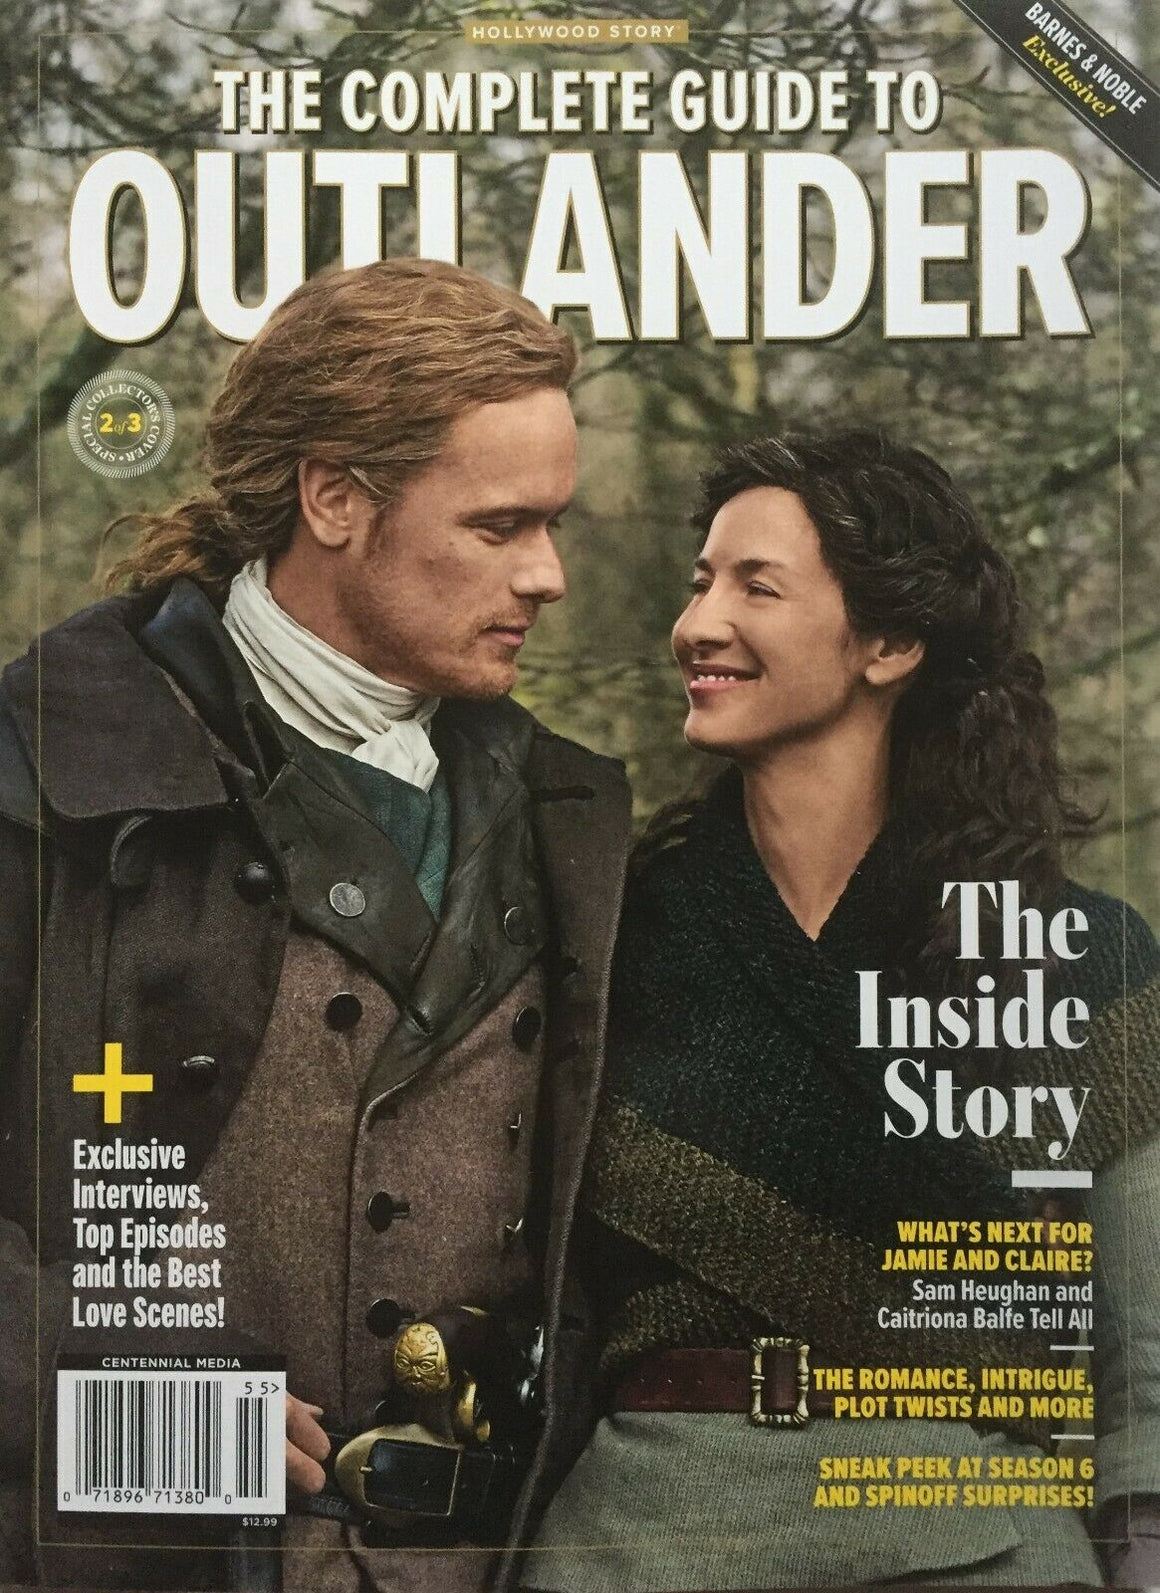 OUTLANDER 2020 COMPLETE GUIDE Caitriona Balfe & Sam Heughan Cover 2 of 3